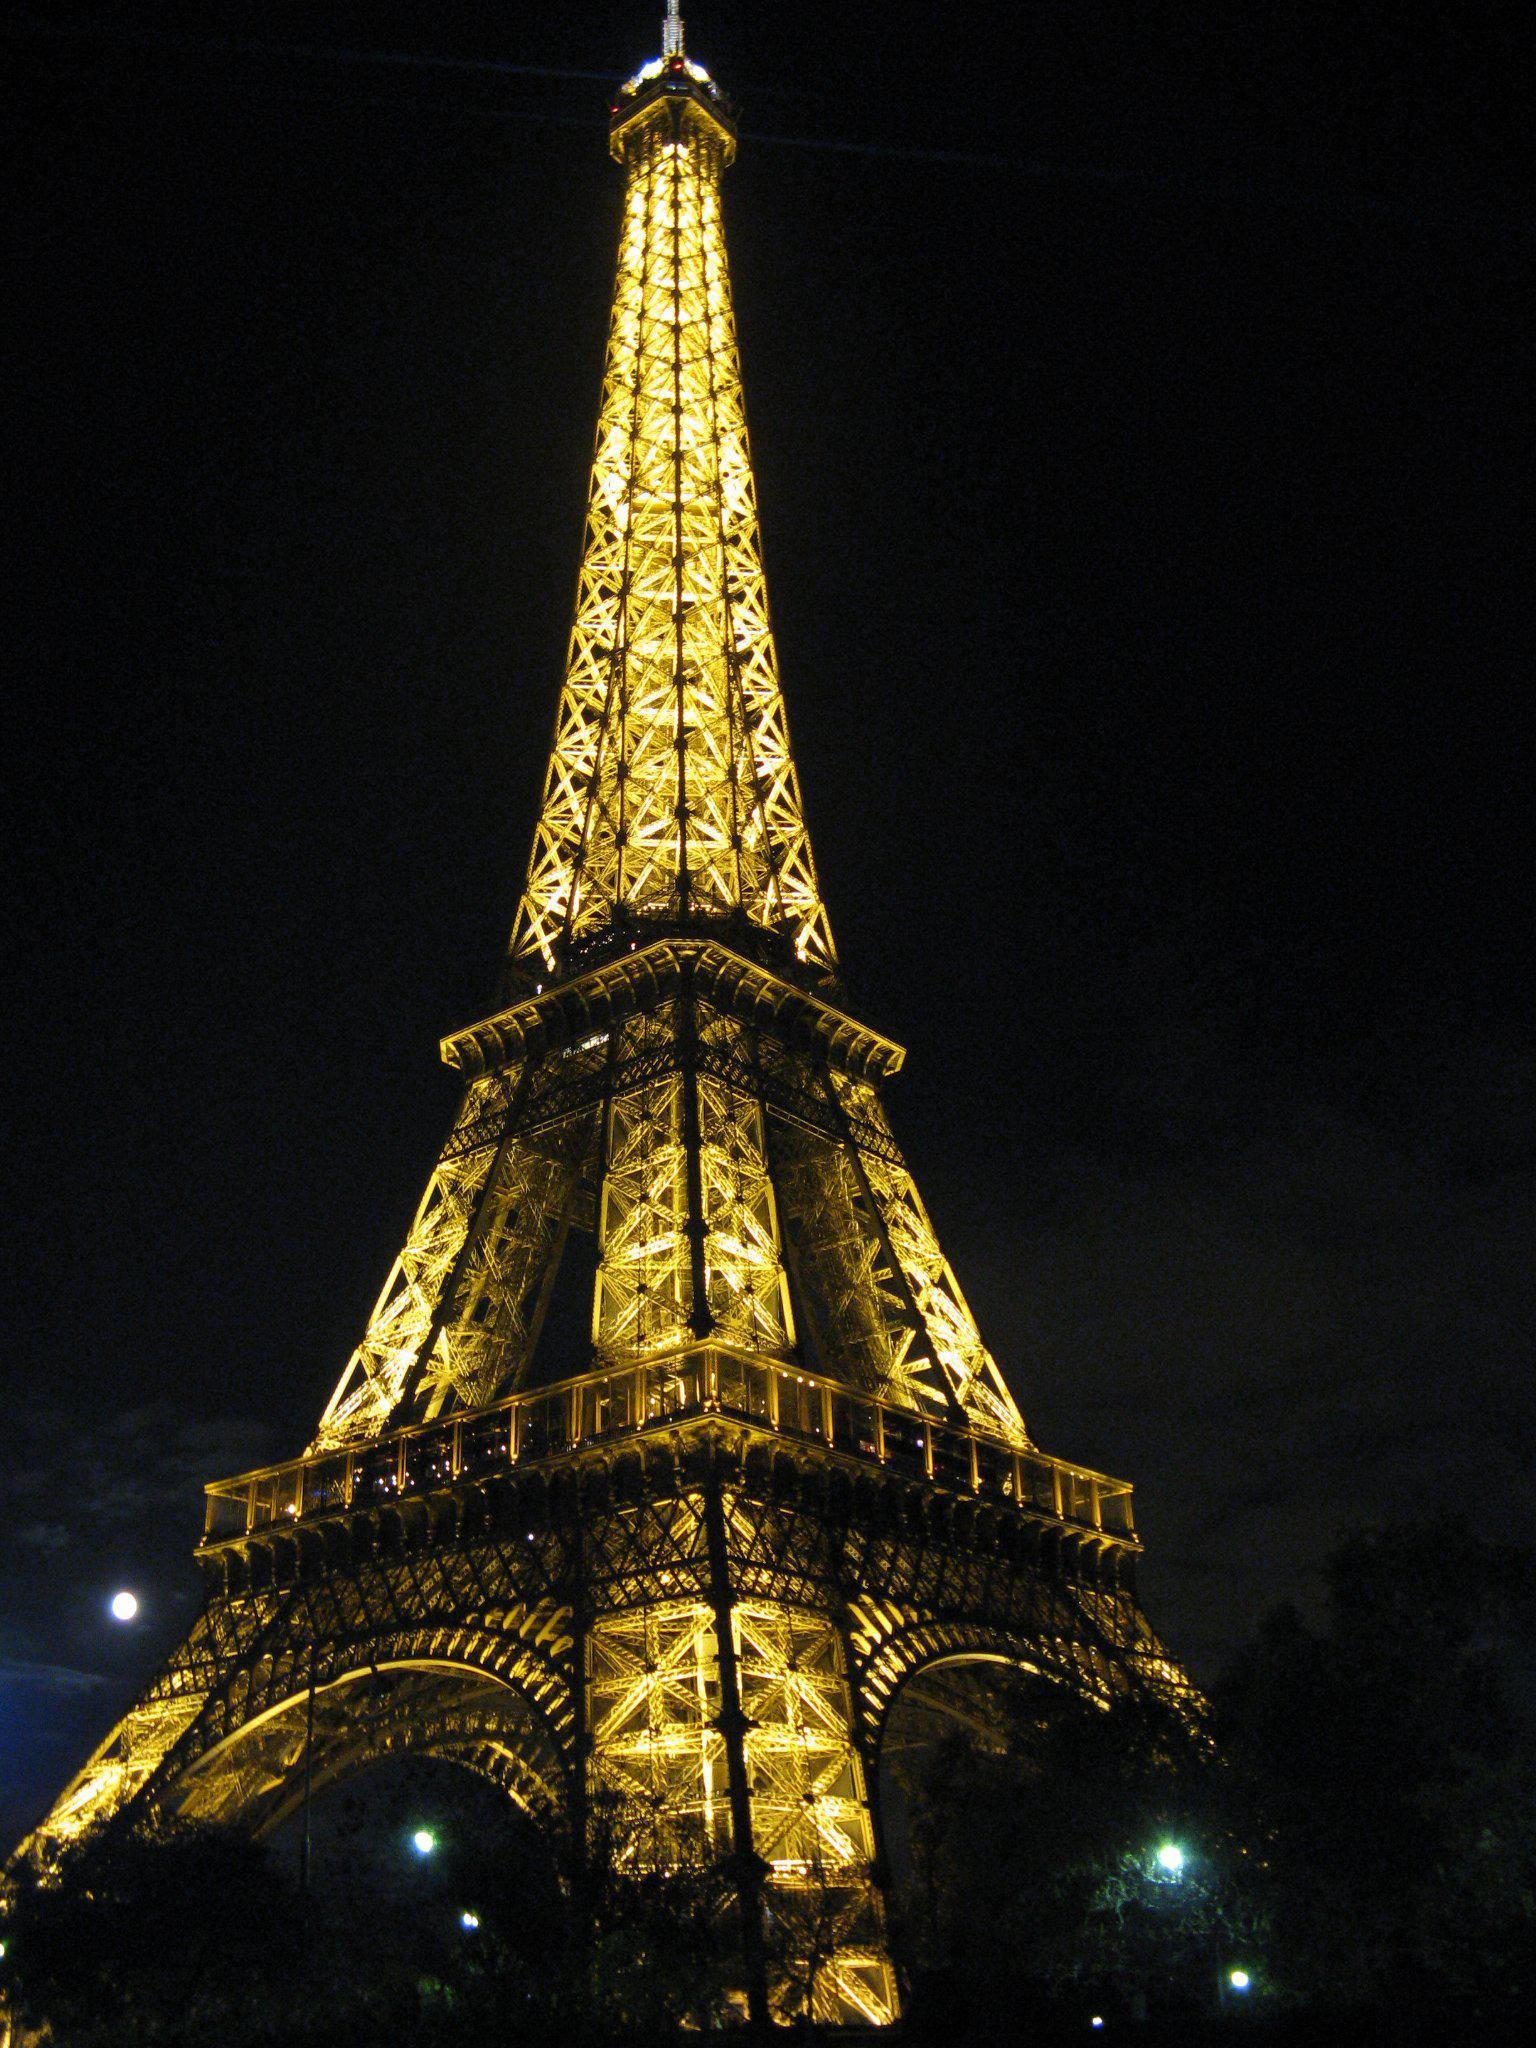 Eiffel Tower Lit Up, Paris, France